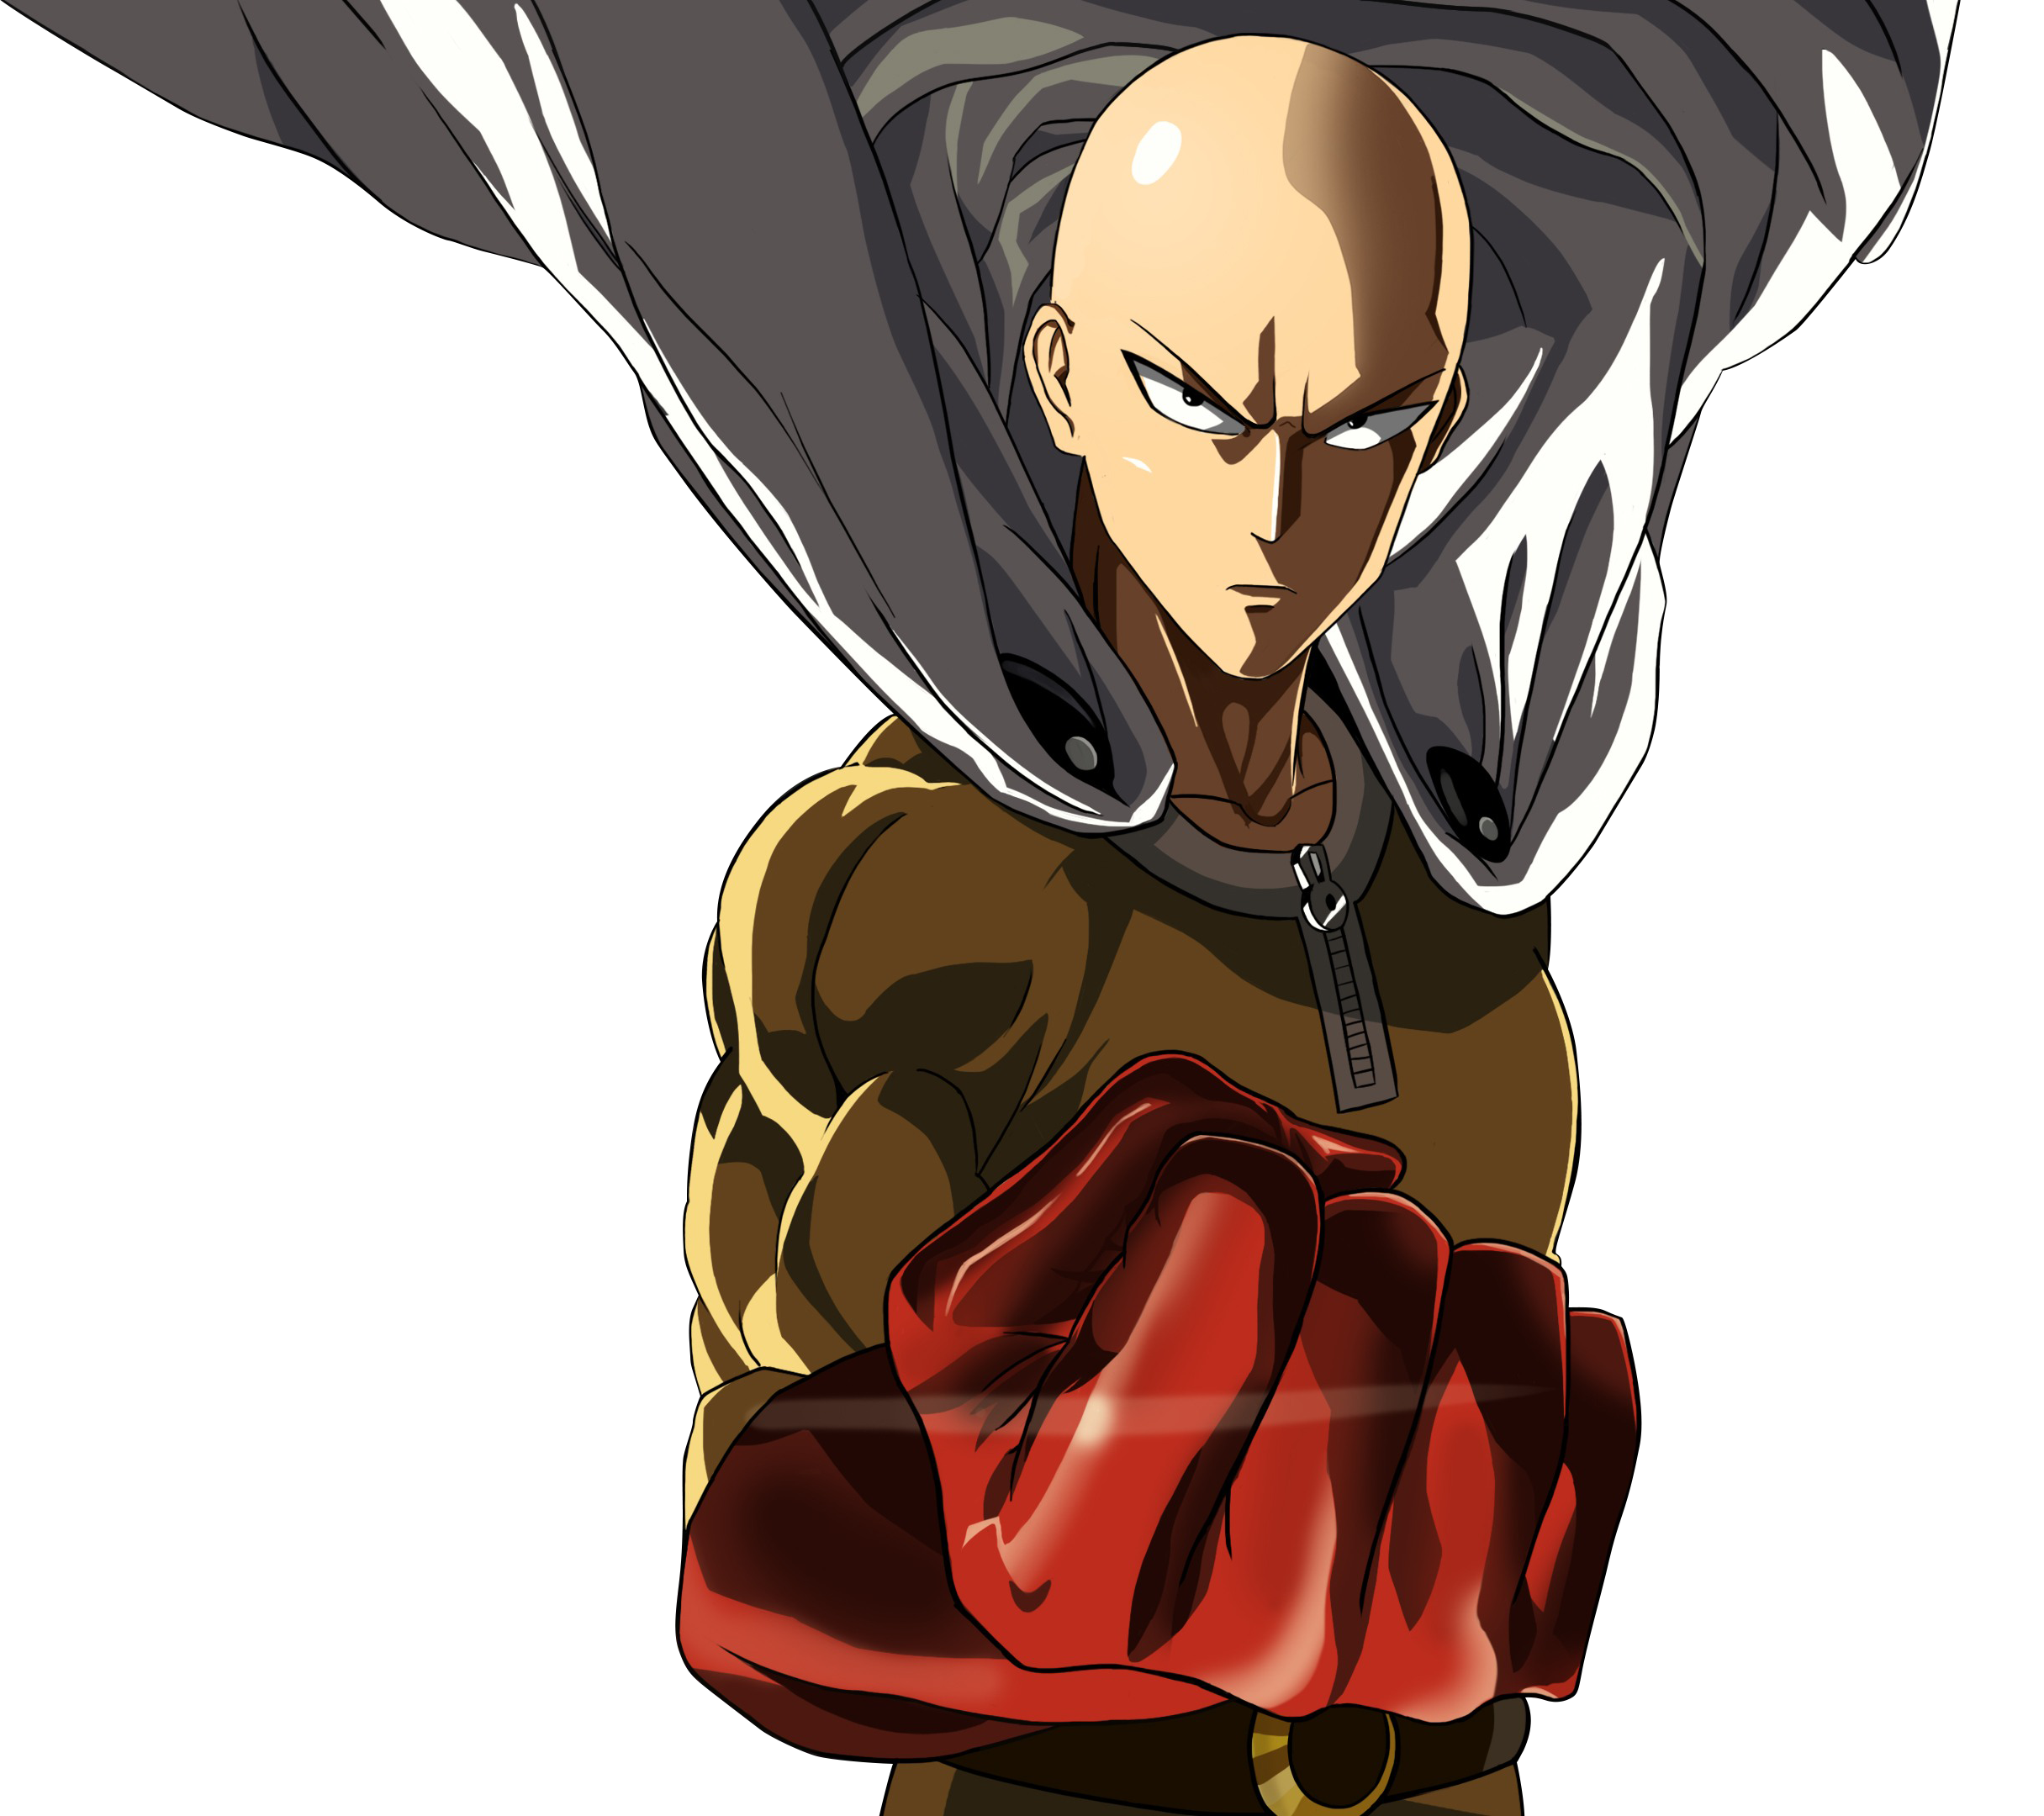 Saitama one punch man png. So who do you